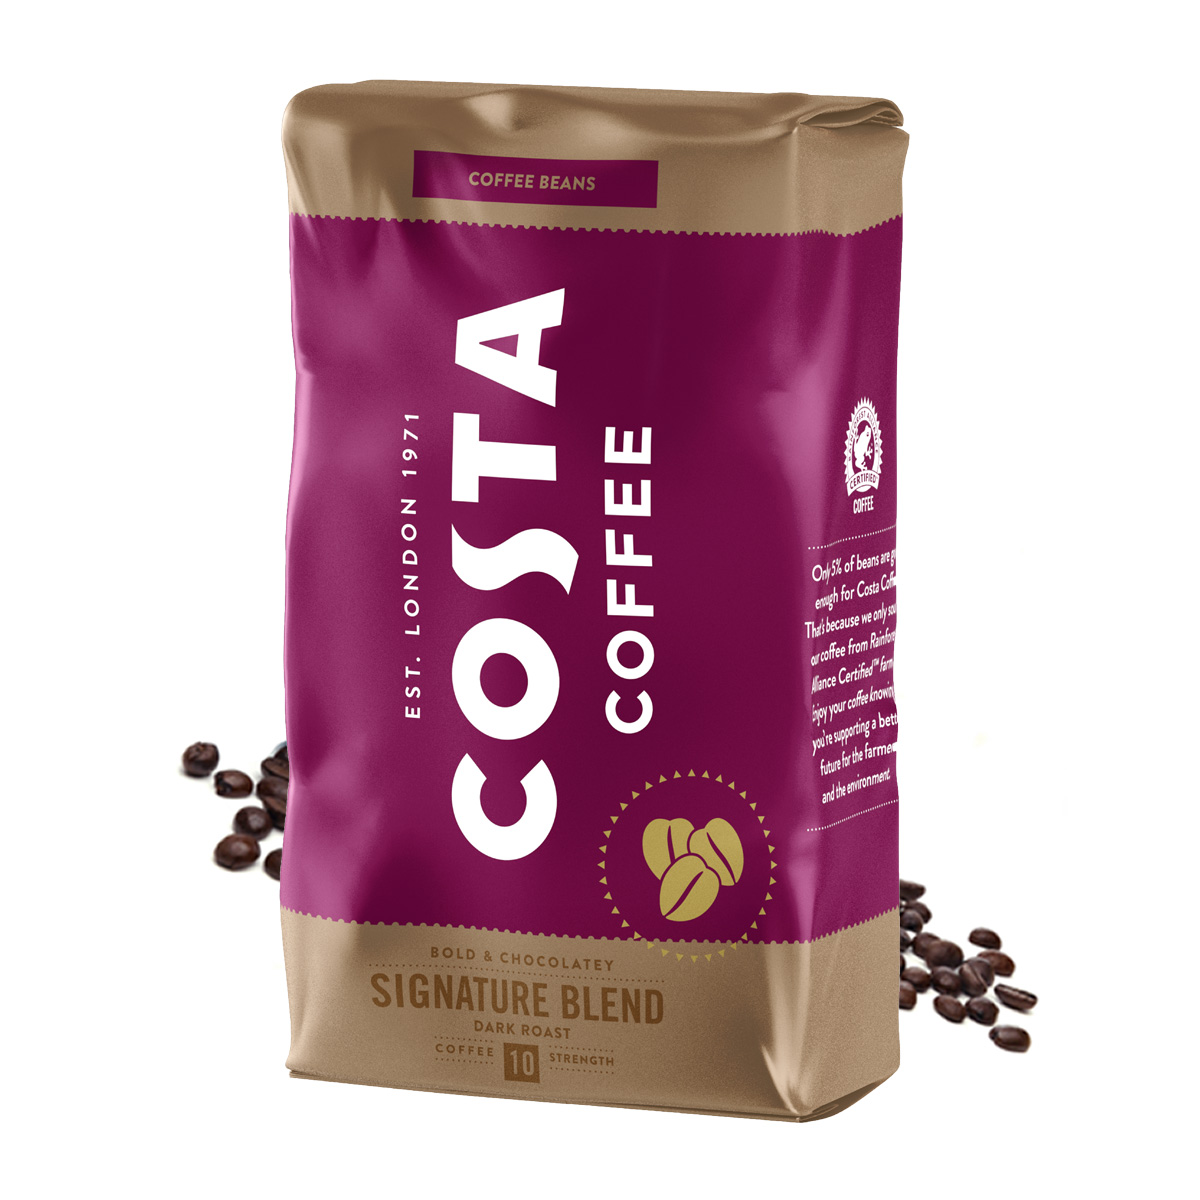 Costa Signature Blend Dark Roast cafea boabe 1kg